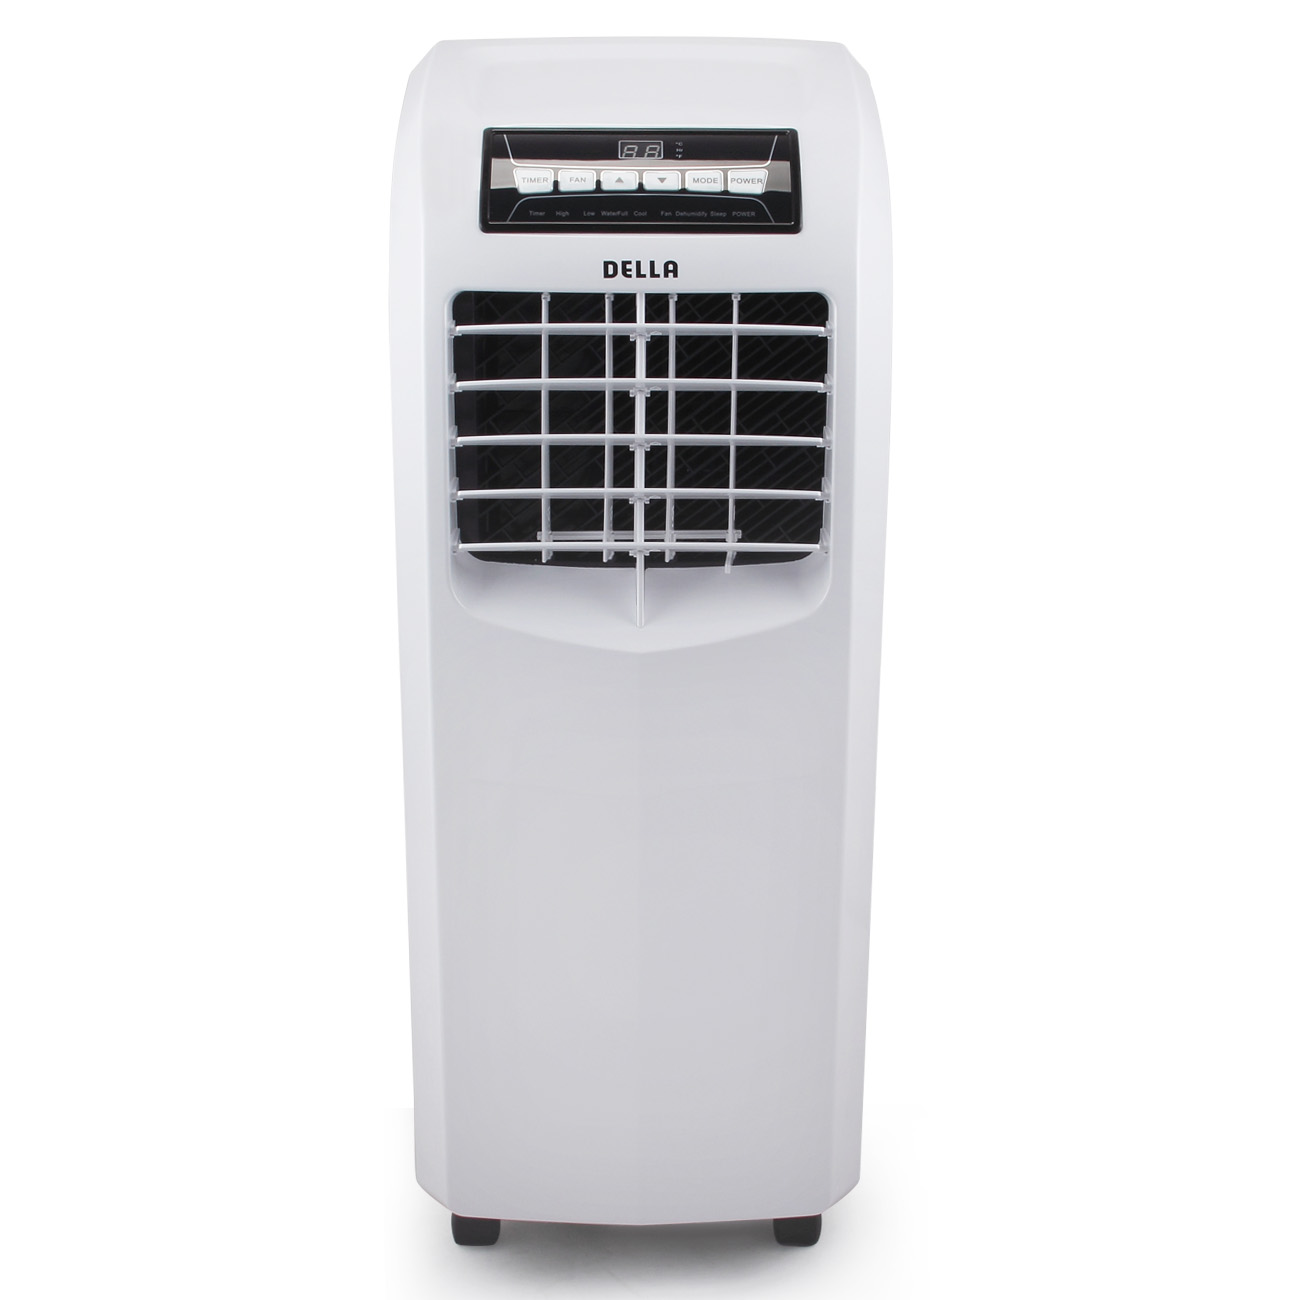 #5C676F 8 000 BTU Portable Air Conditioner And Dehumidifier  2017 13612 Portable Dehumidifier Air Conditioner photo with 1300x1300 px on helpvideos.info - Air Conditioners, Air Coolers and more